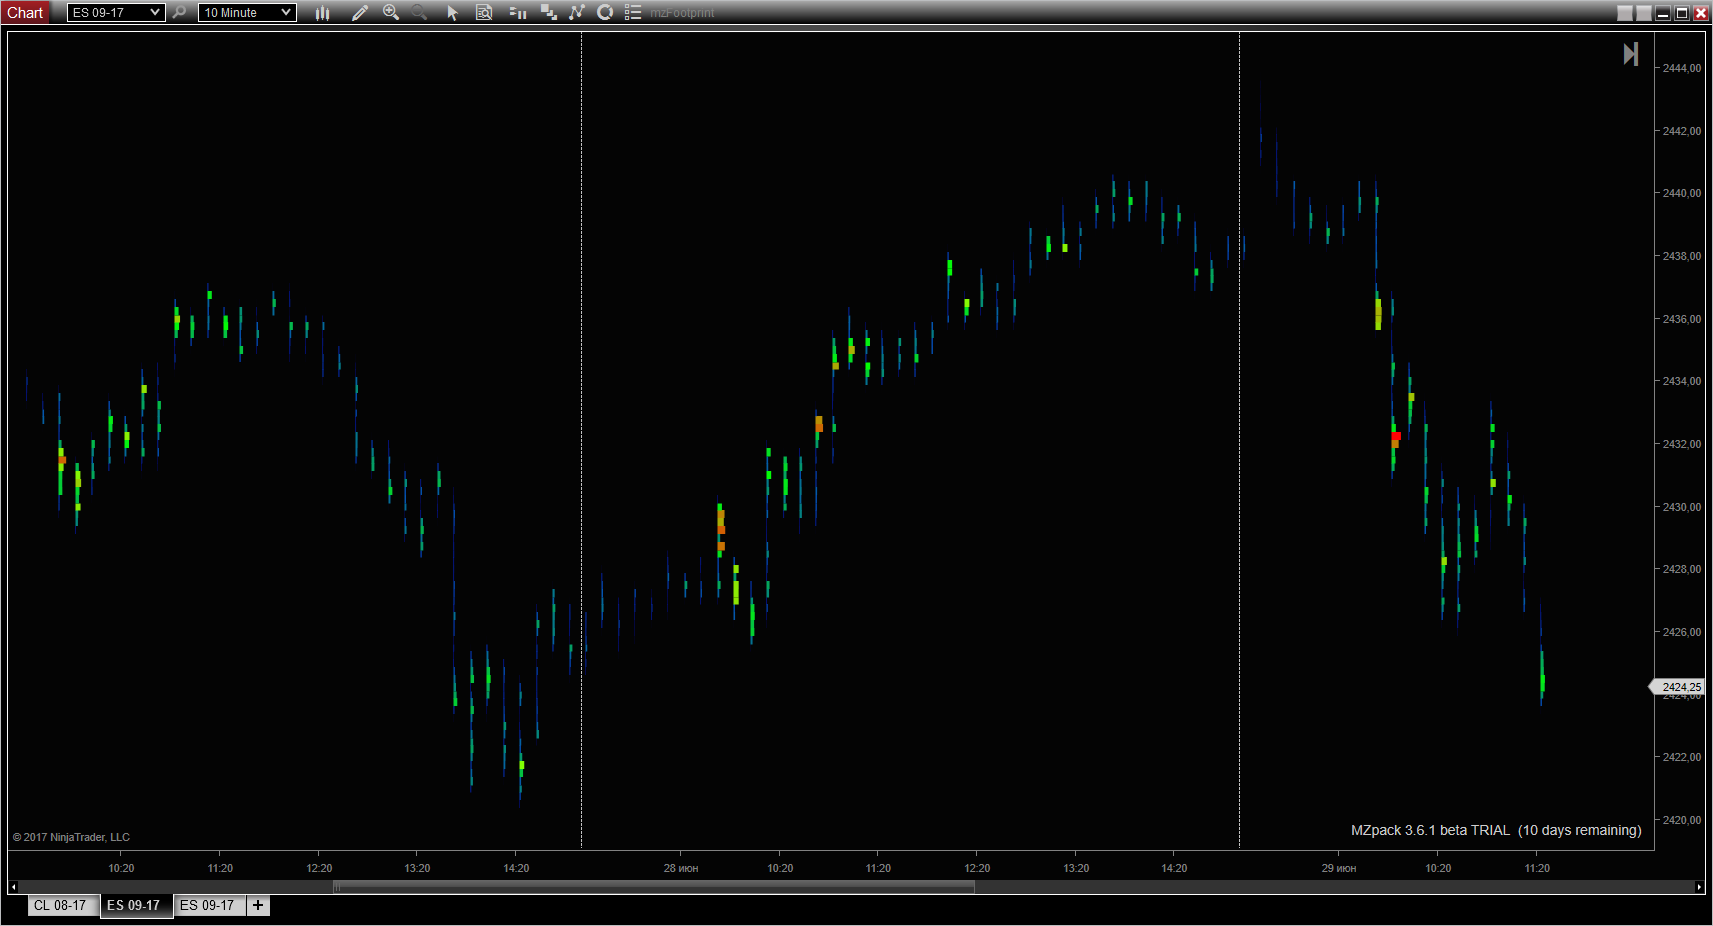 footprint-for-ninjatrader-8-cluster-heatmap-chart